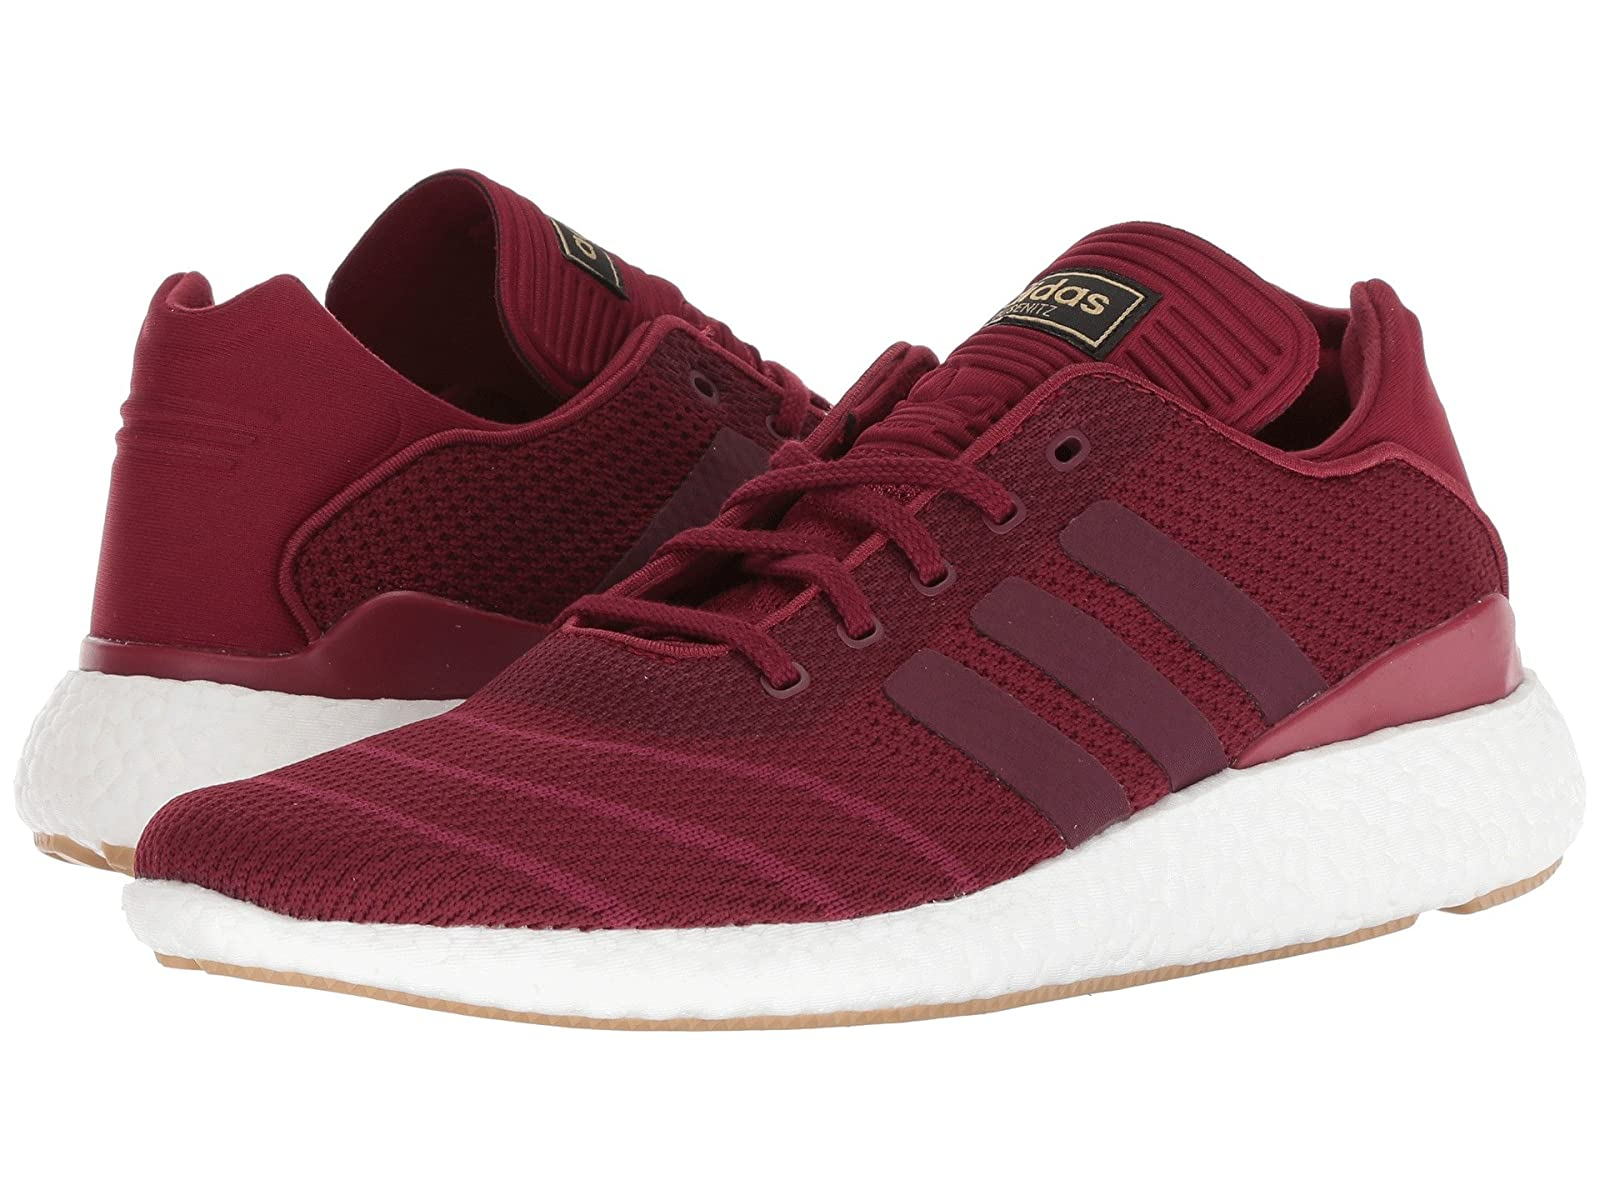 adidas Skateboarding Busenitz Pure Boost PKAtmospheric grades have affordable shoes